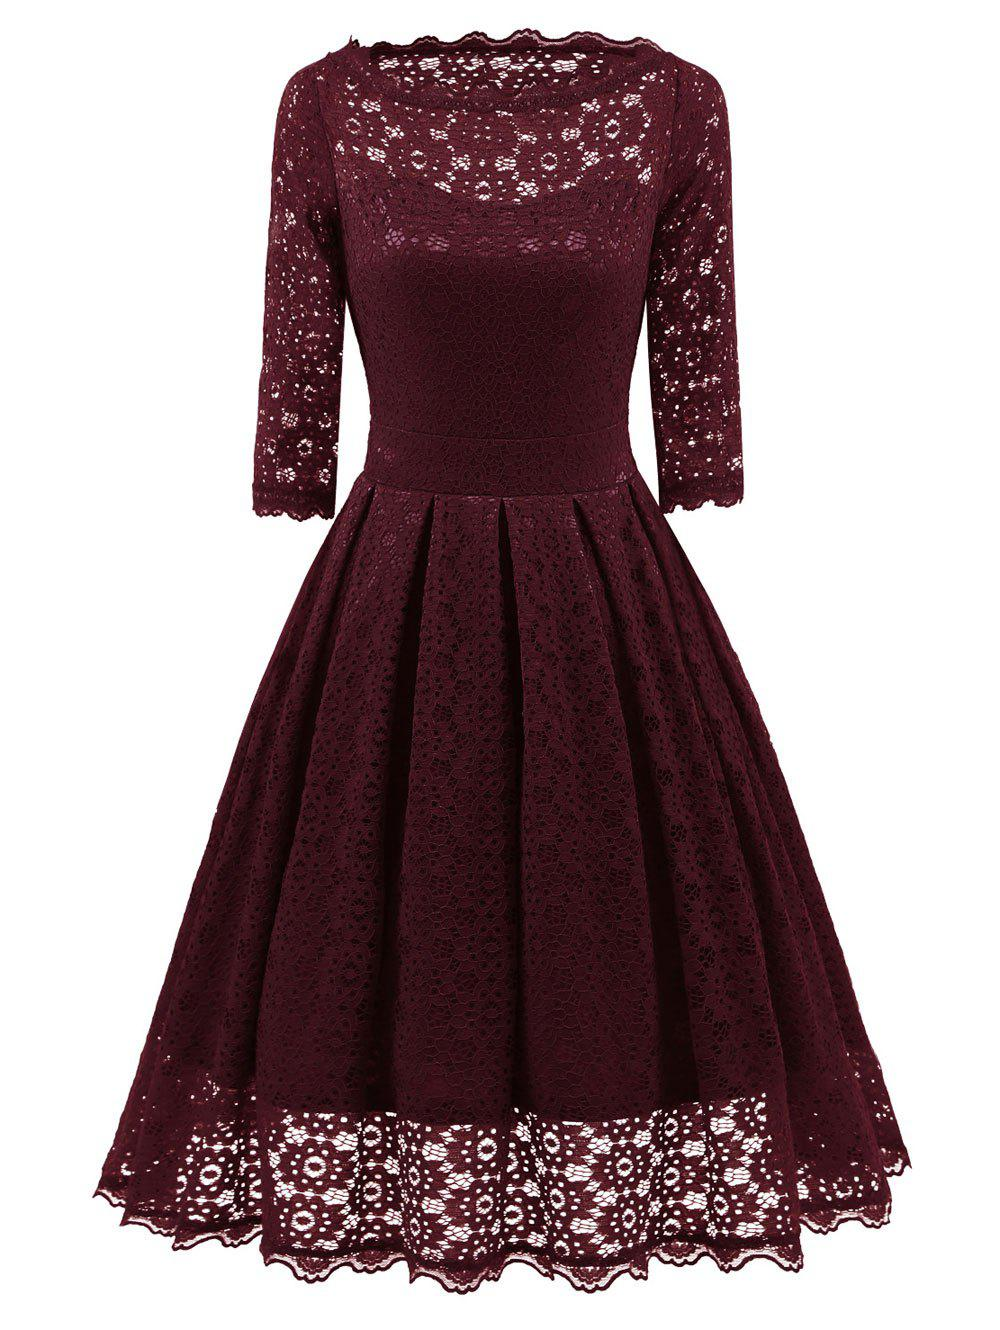 Shop Lace Party Vintage Fit and Flare Dress